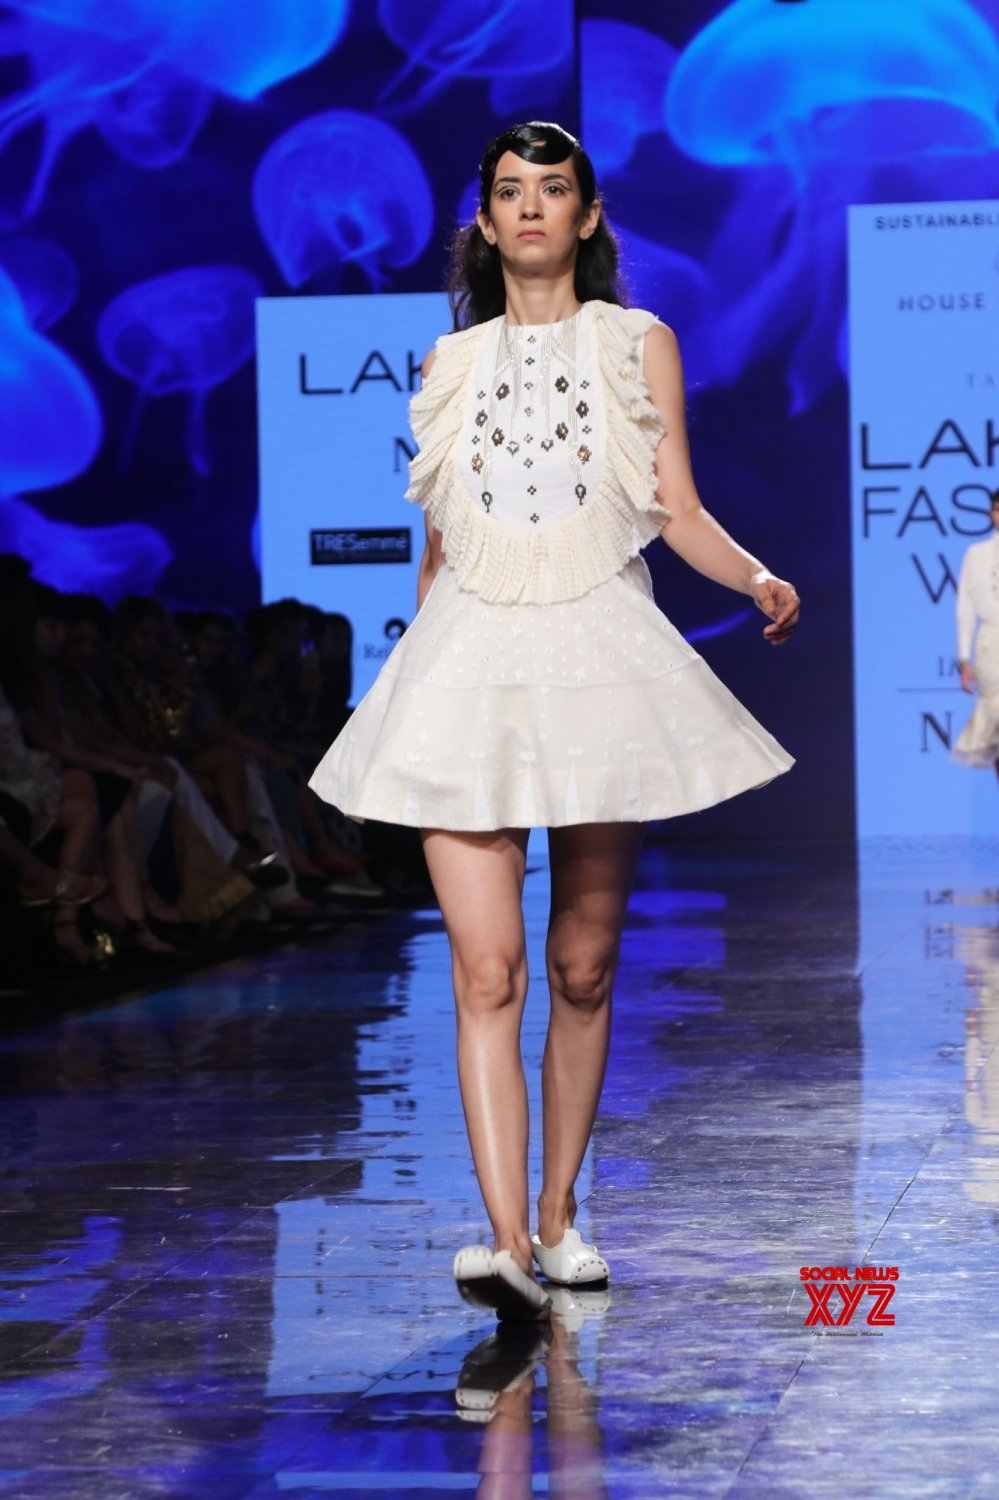 Mumbai: Siddharth walks for 'House Of Three X Tantajo' at Lakme Fashion Week #Gallery